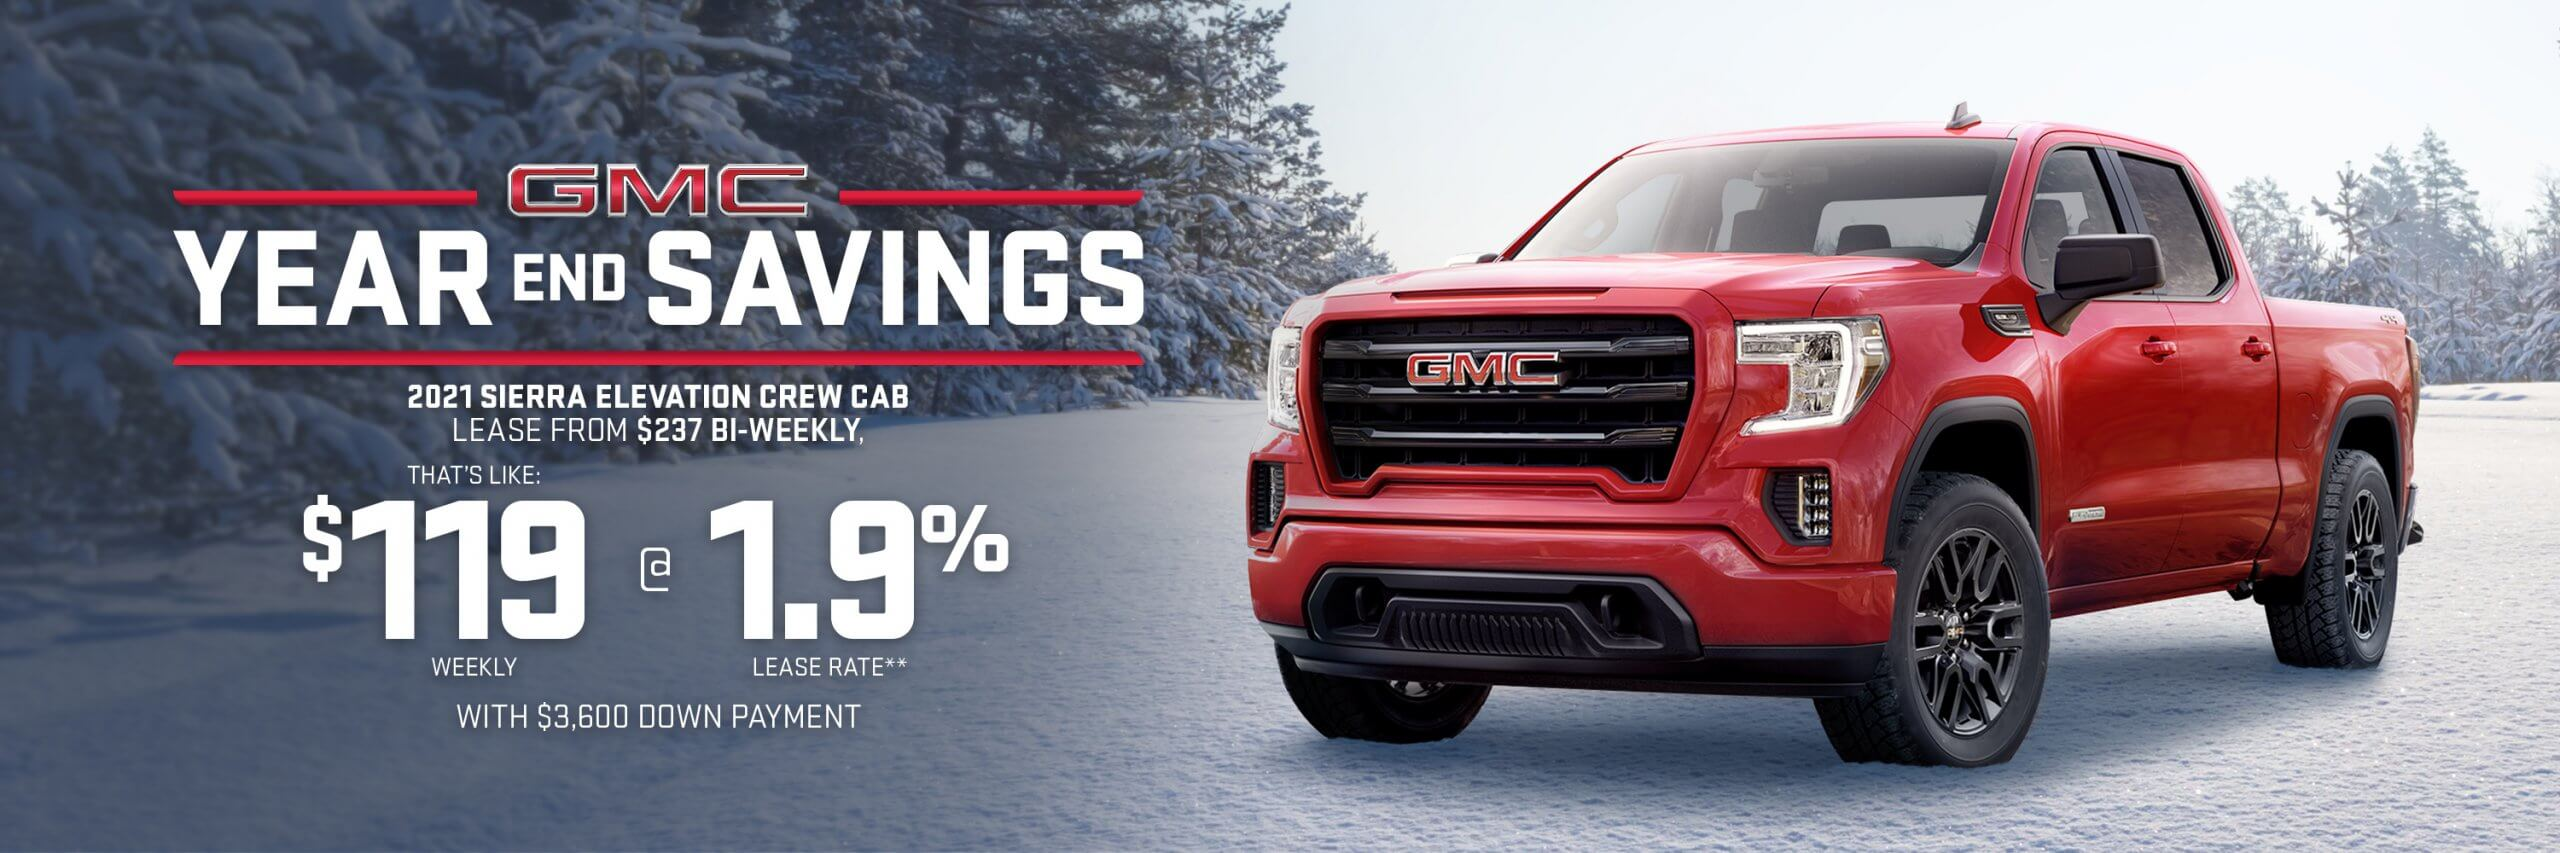 GMC Year End Savings Sierra